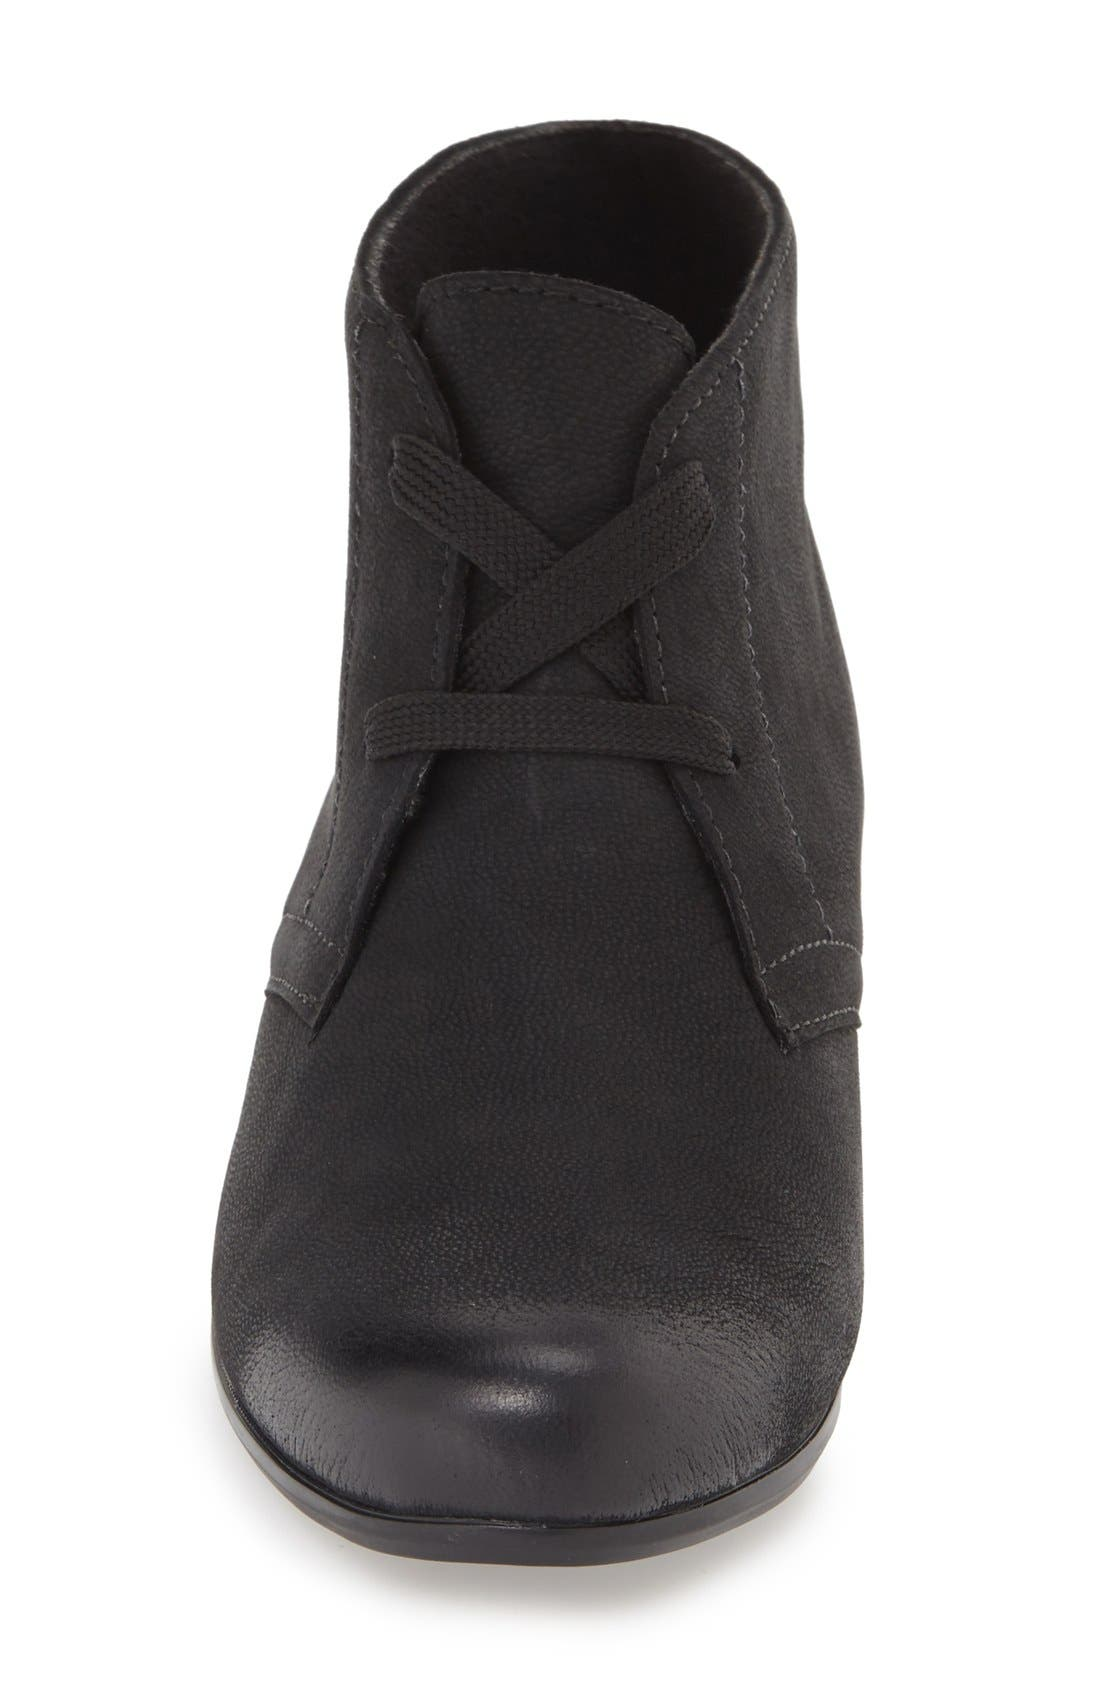 Alternate Image 3  - Munro 'Sloane' Lace Up Bootie (Women)